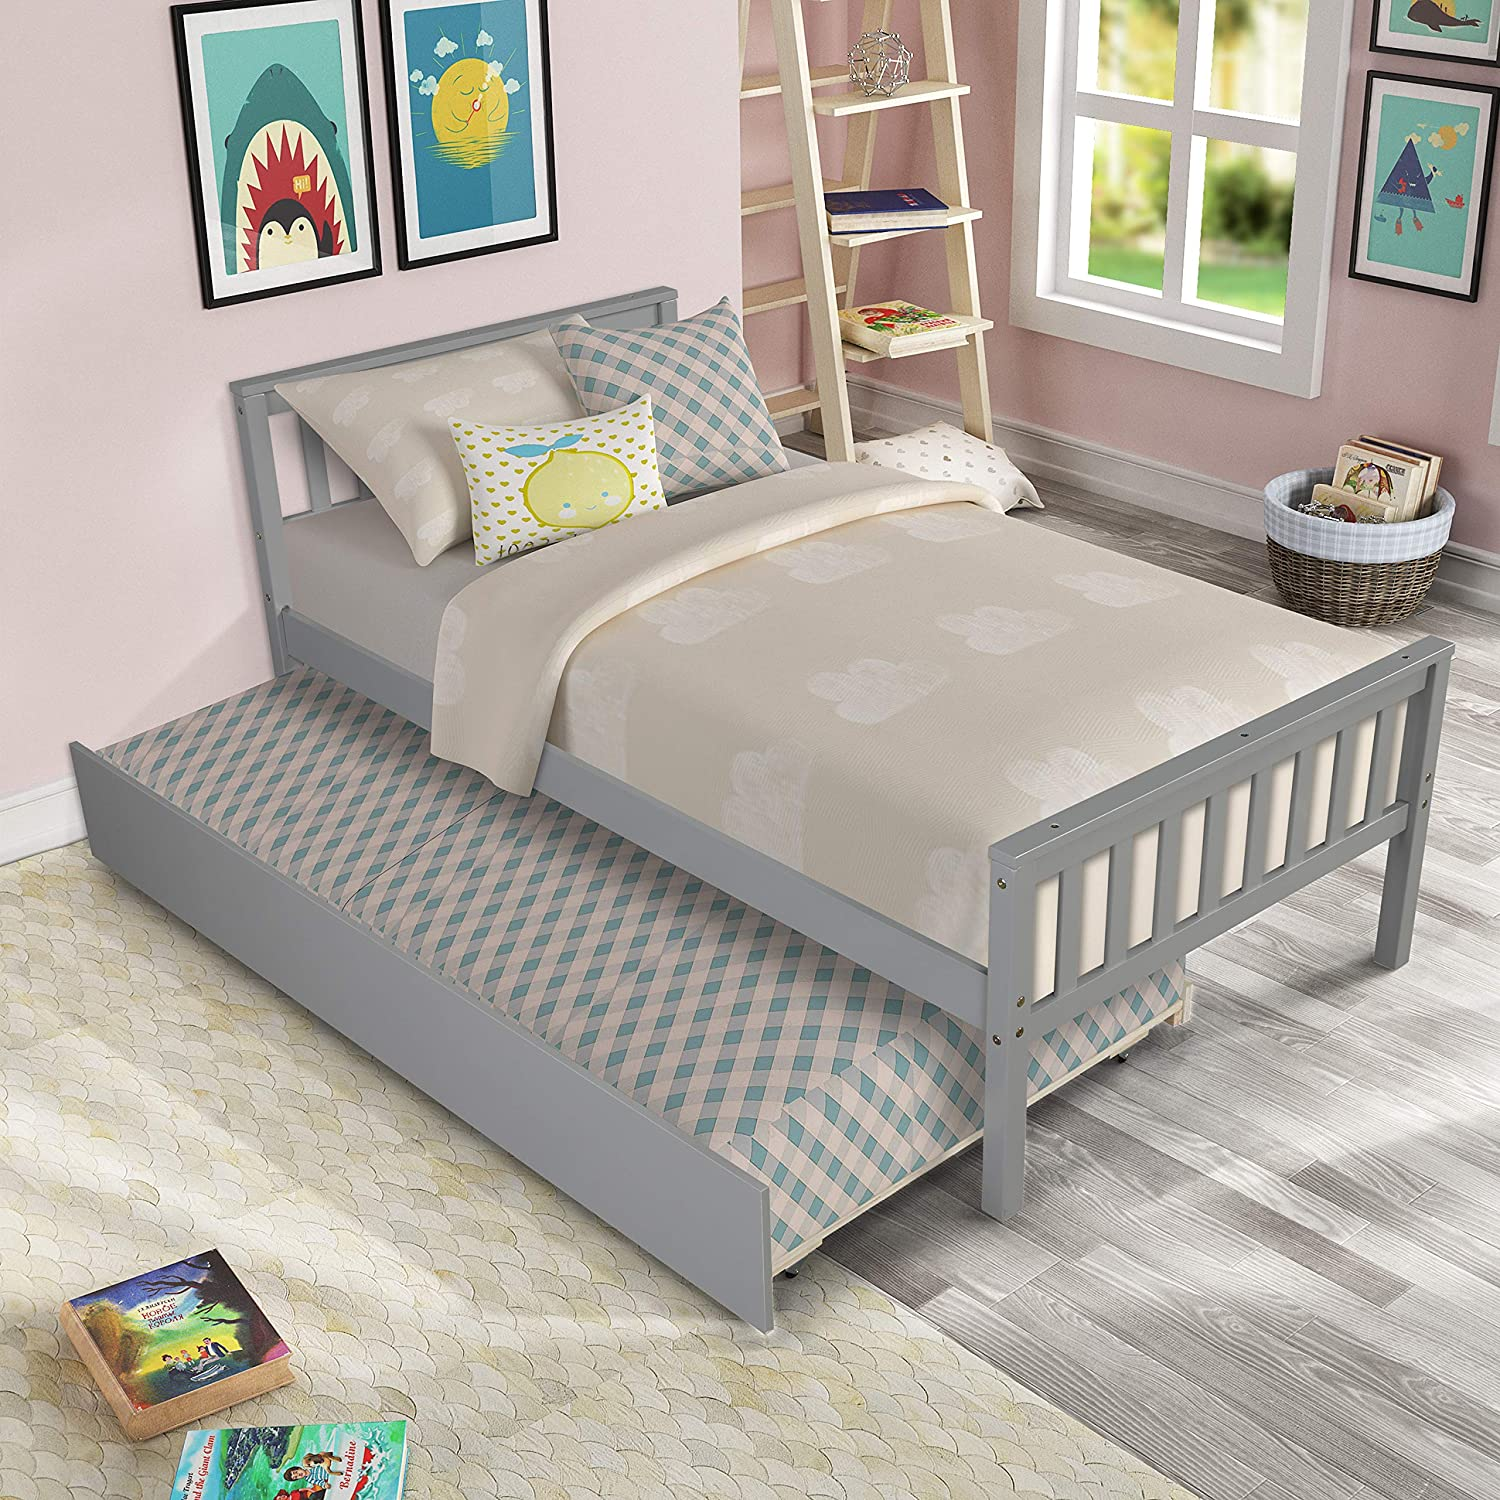 Twin Bed San Diego Mall with Trundle HABITRIO Be Wood Solid Size Platform Max 41% OFF